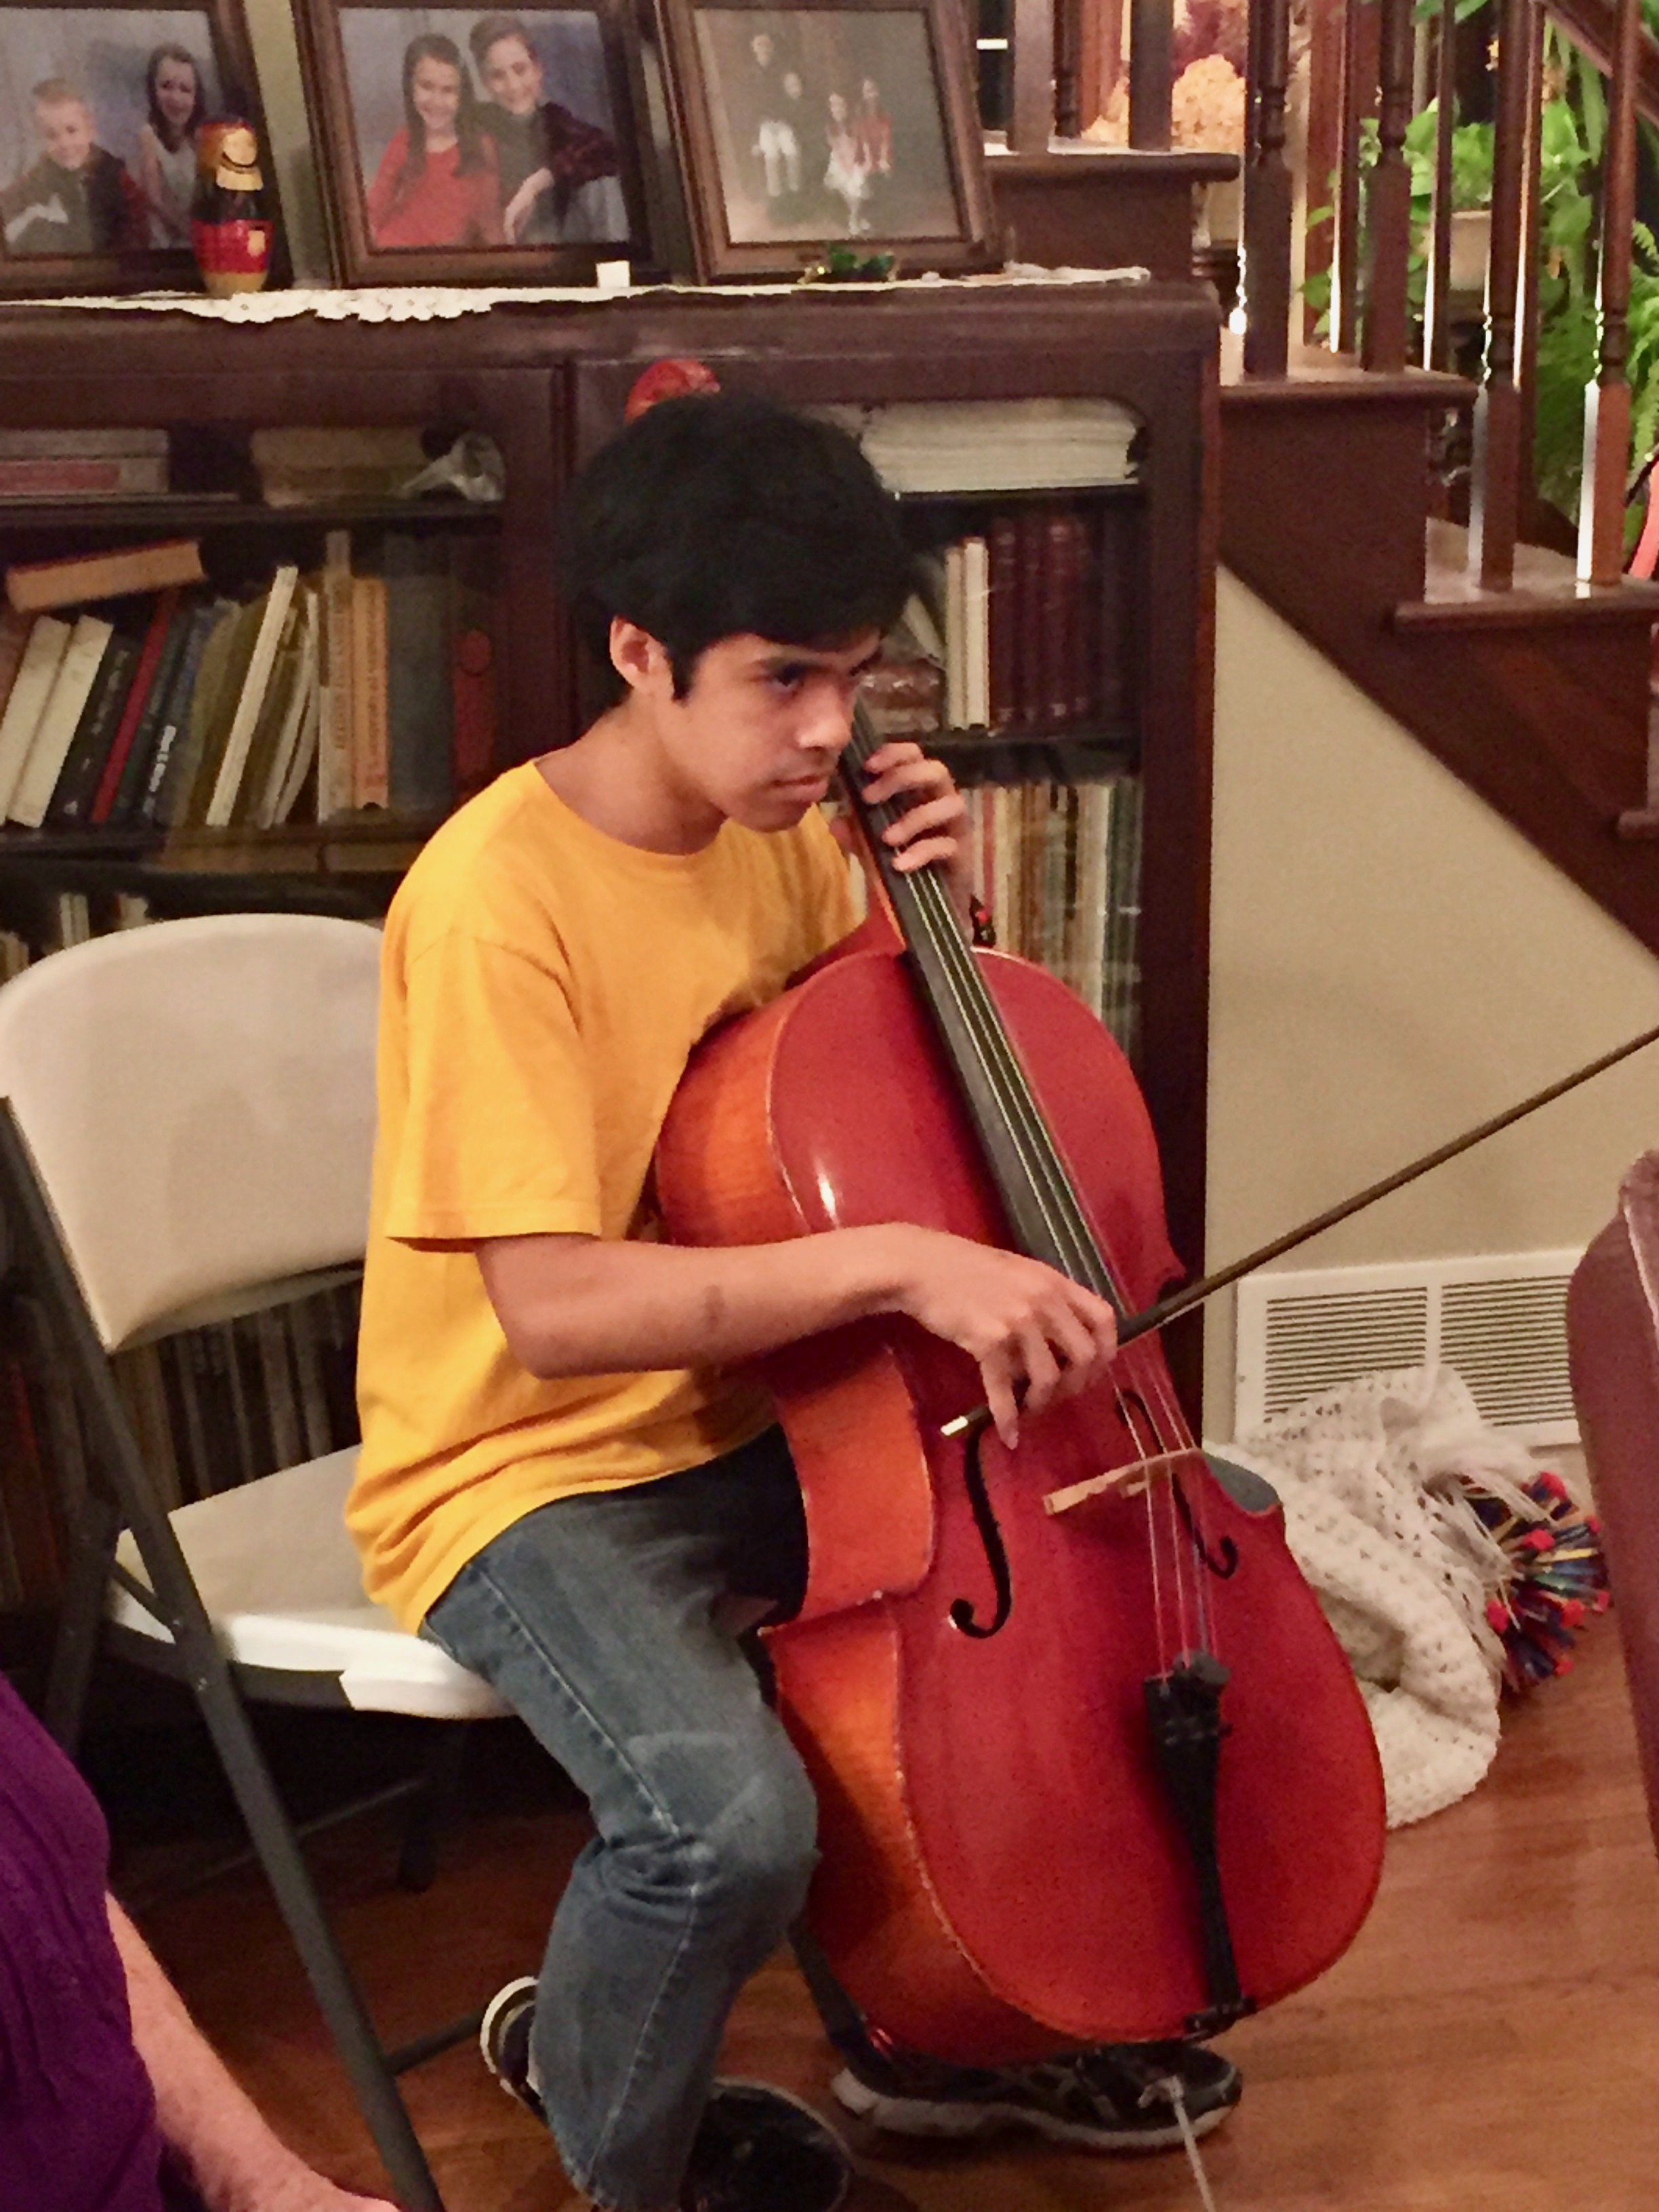 Archie on the cello